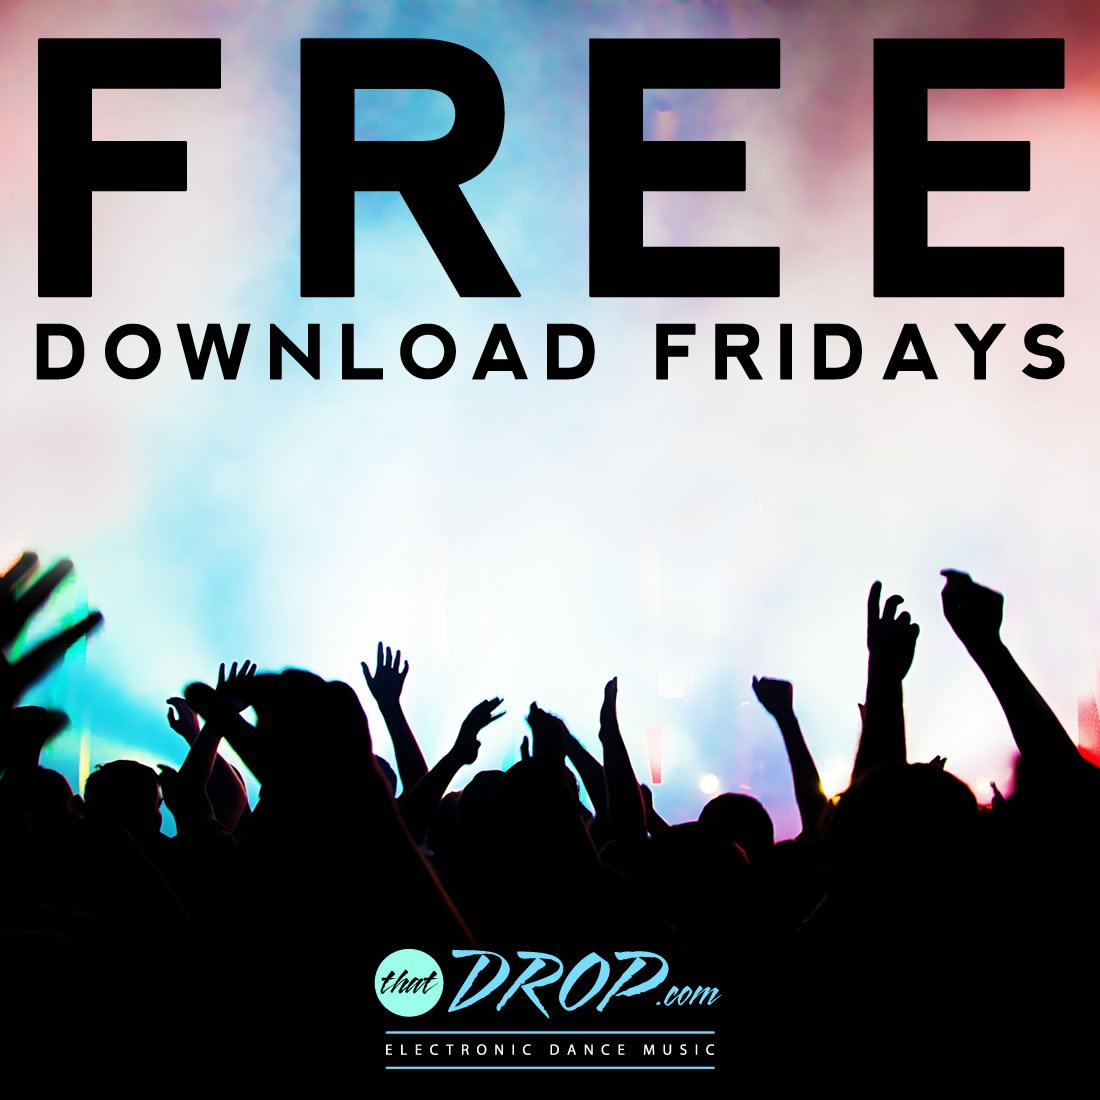 Free edm downloads edm joy | edm music blog | edm festivals.